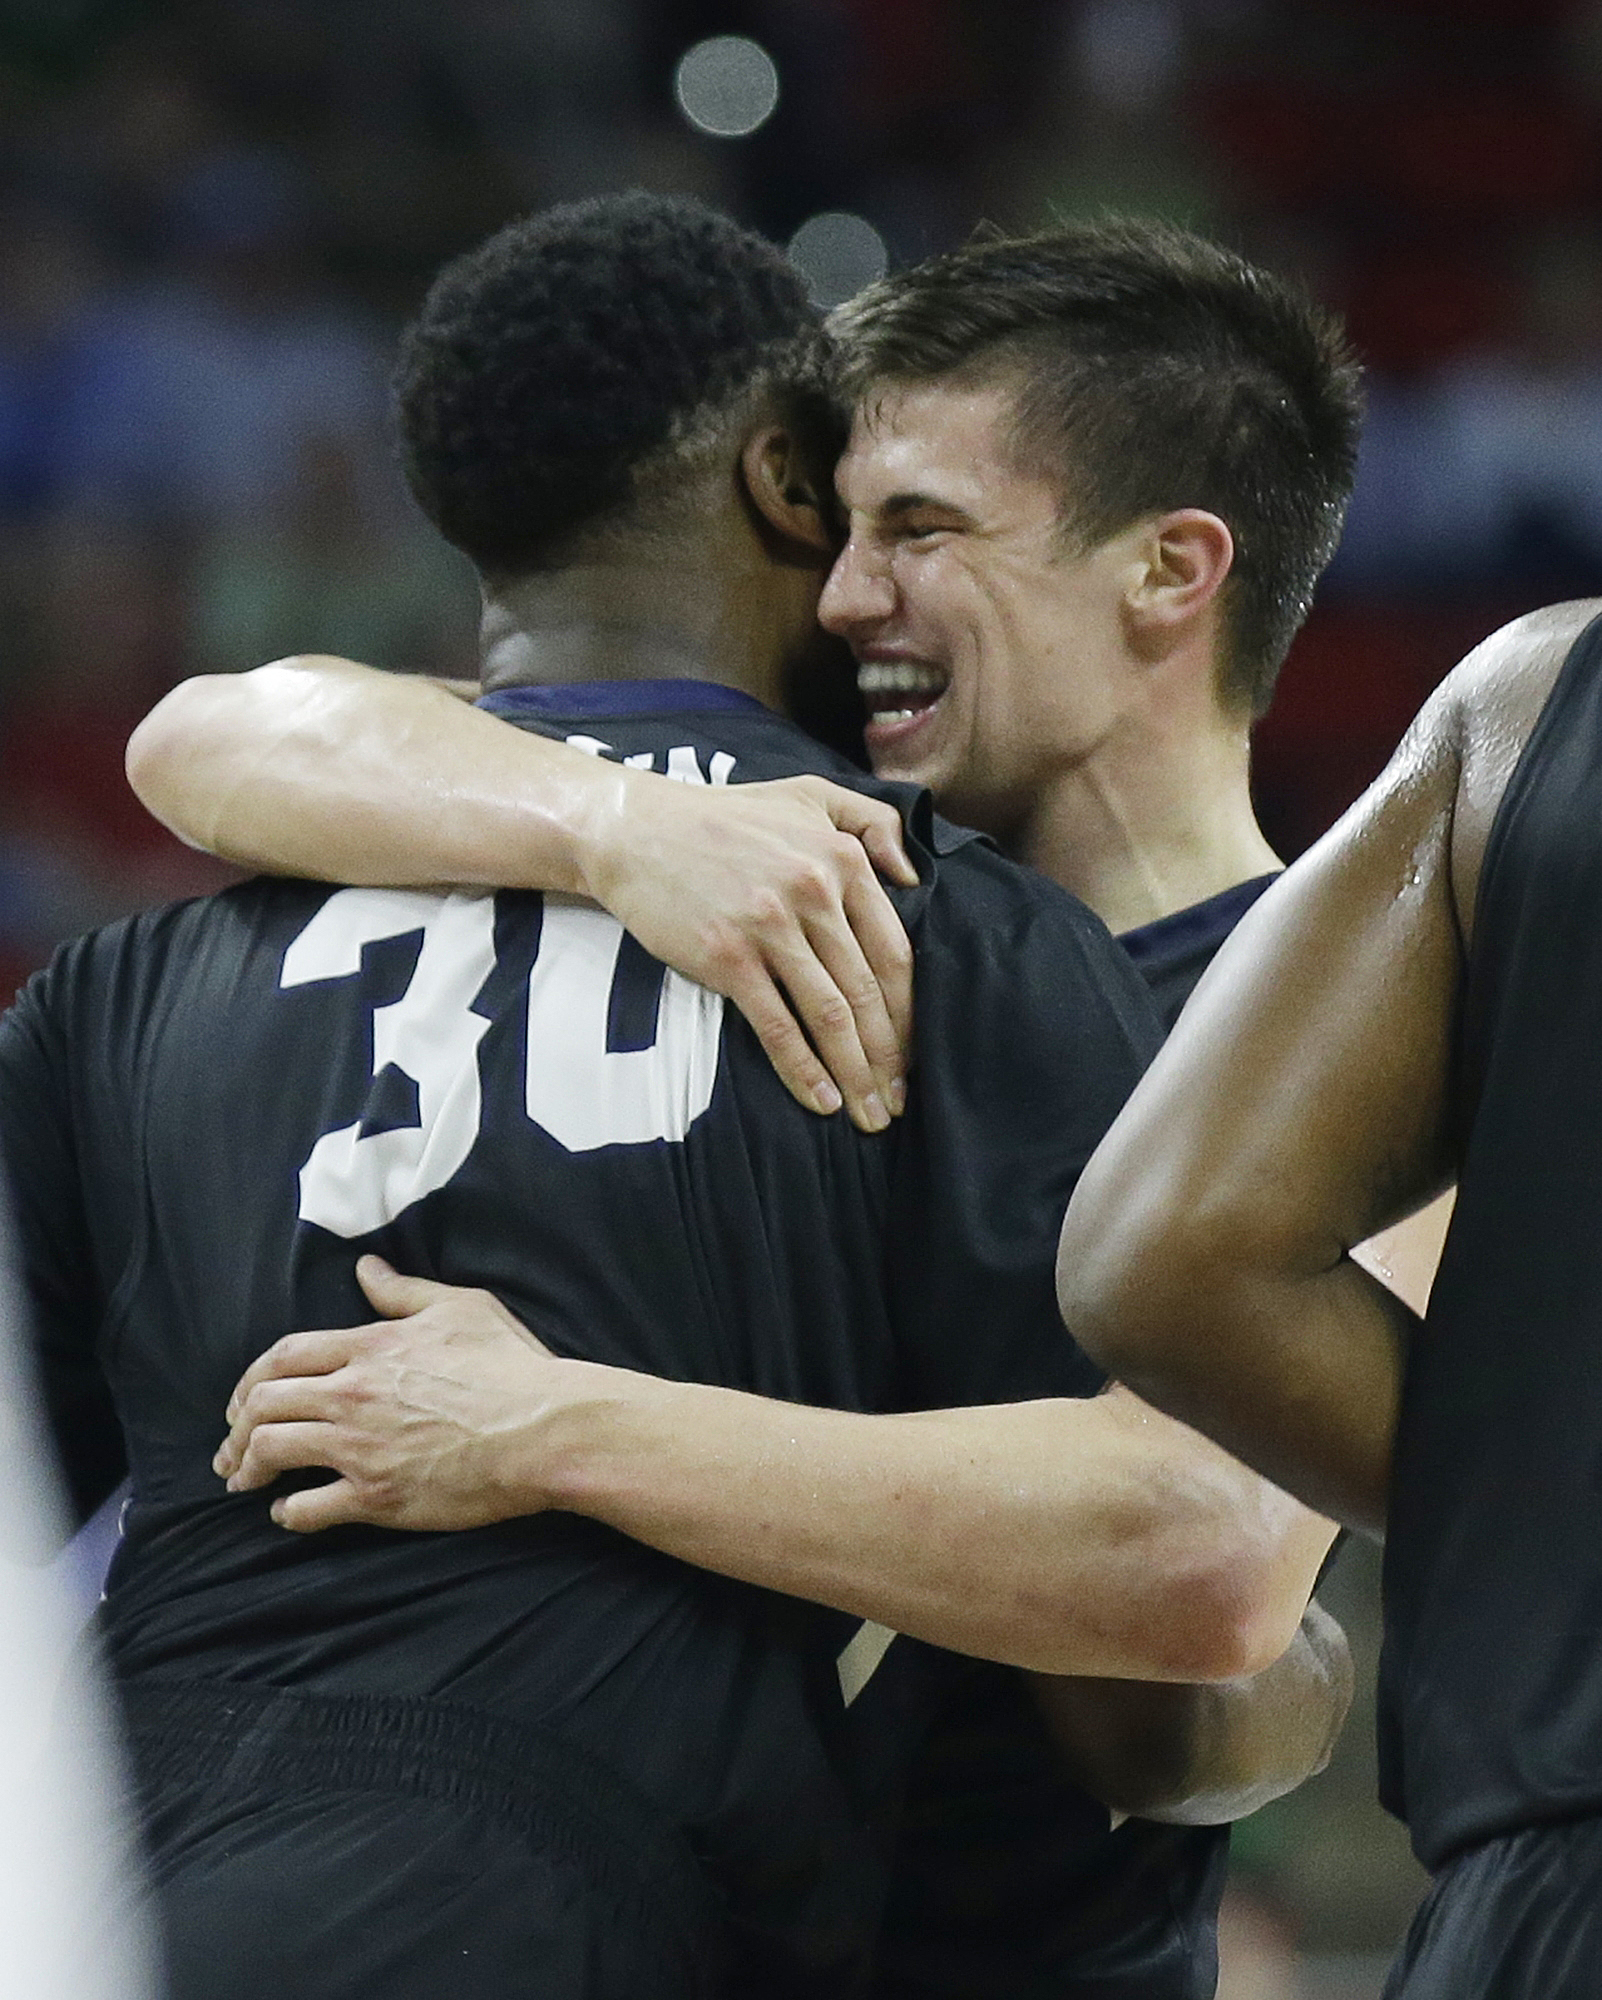 Butler guard Kellen Dunham (24) celebrates with Butler forward Kelan Martin (30) after the second half of a first-round men's college basketball game in the NCAA Tournament against Texas Tech, Thursday, March 17, 2016, in Raleigh, N.C. Butler won 71-61. (